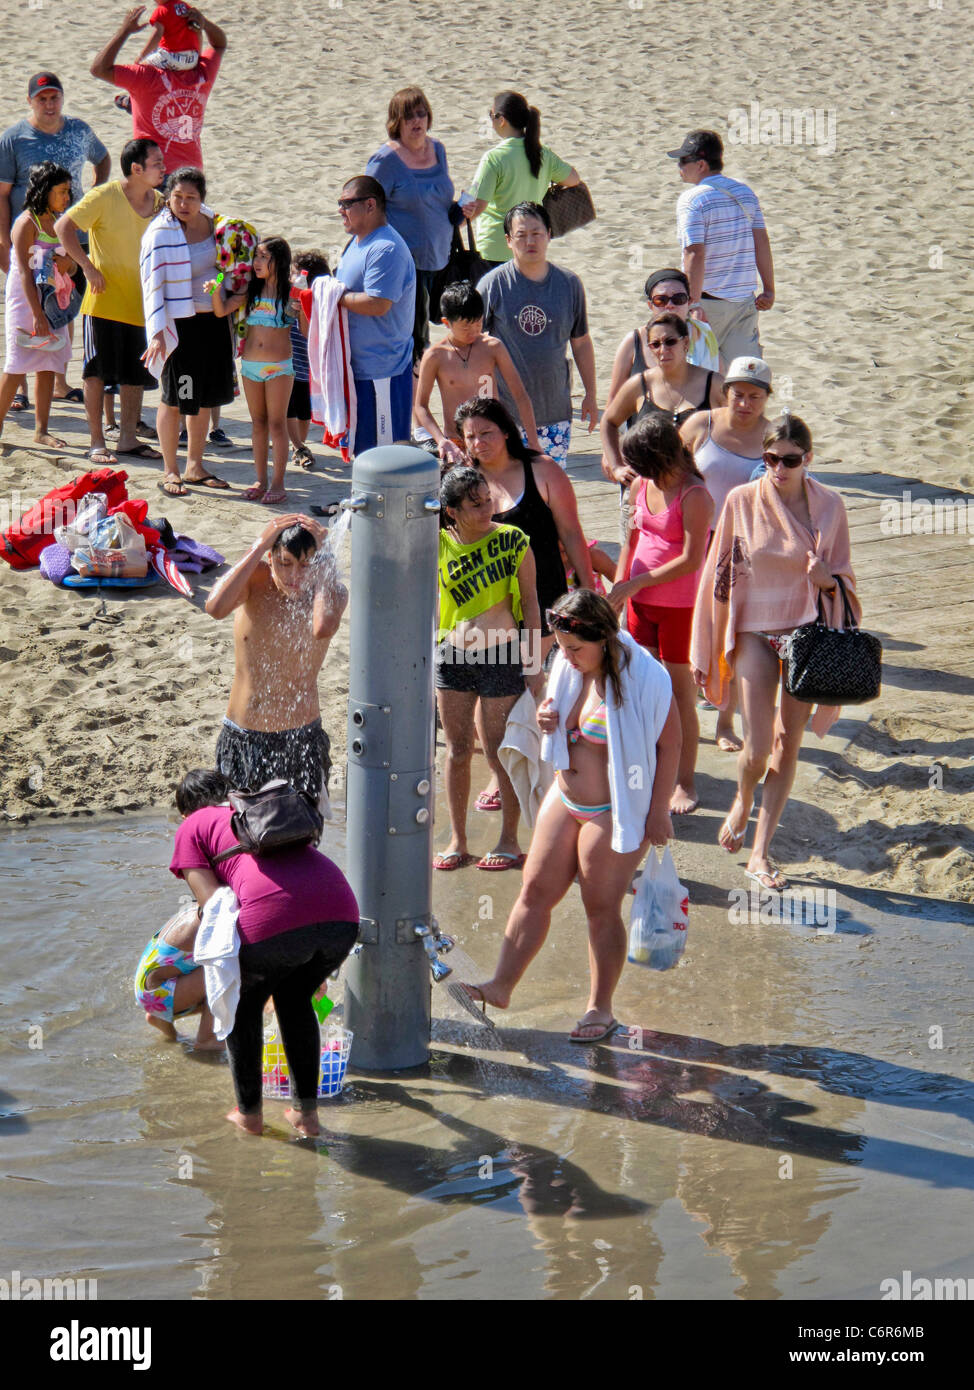 A weekend summer crowd of different ages and ethnicities lines up at a fresh water shower on the beach in Santa - Stock Image